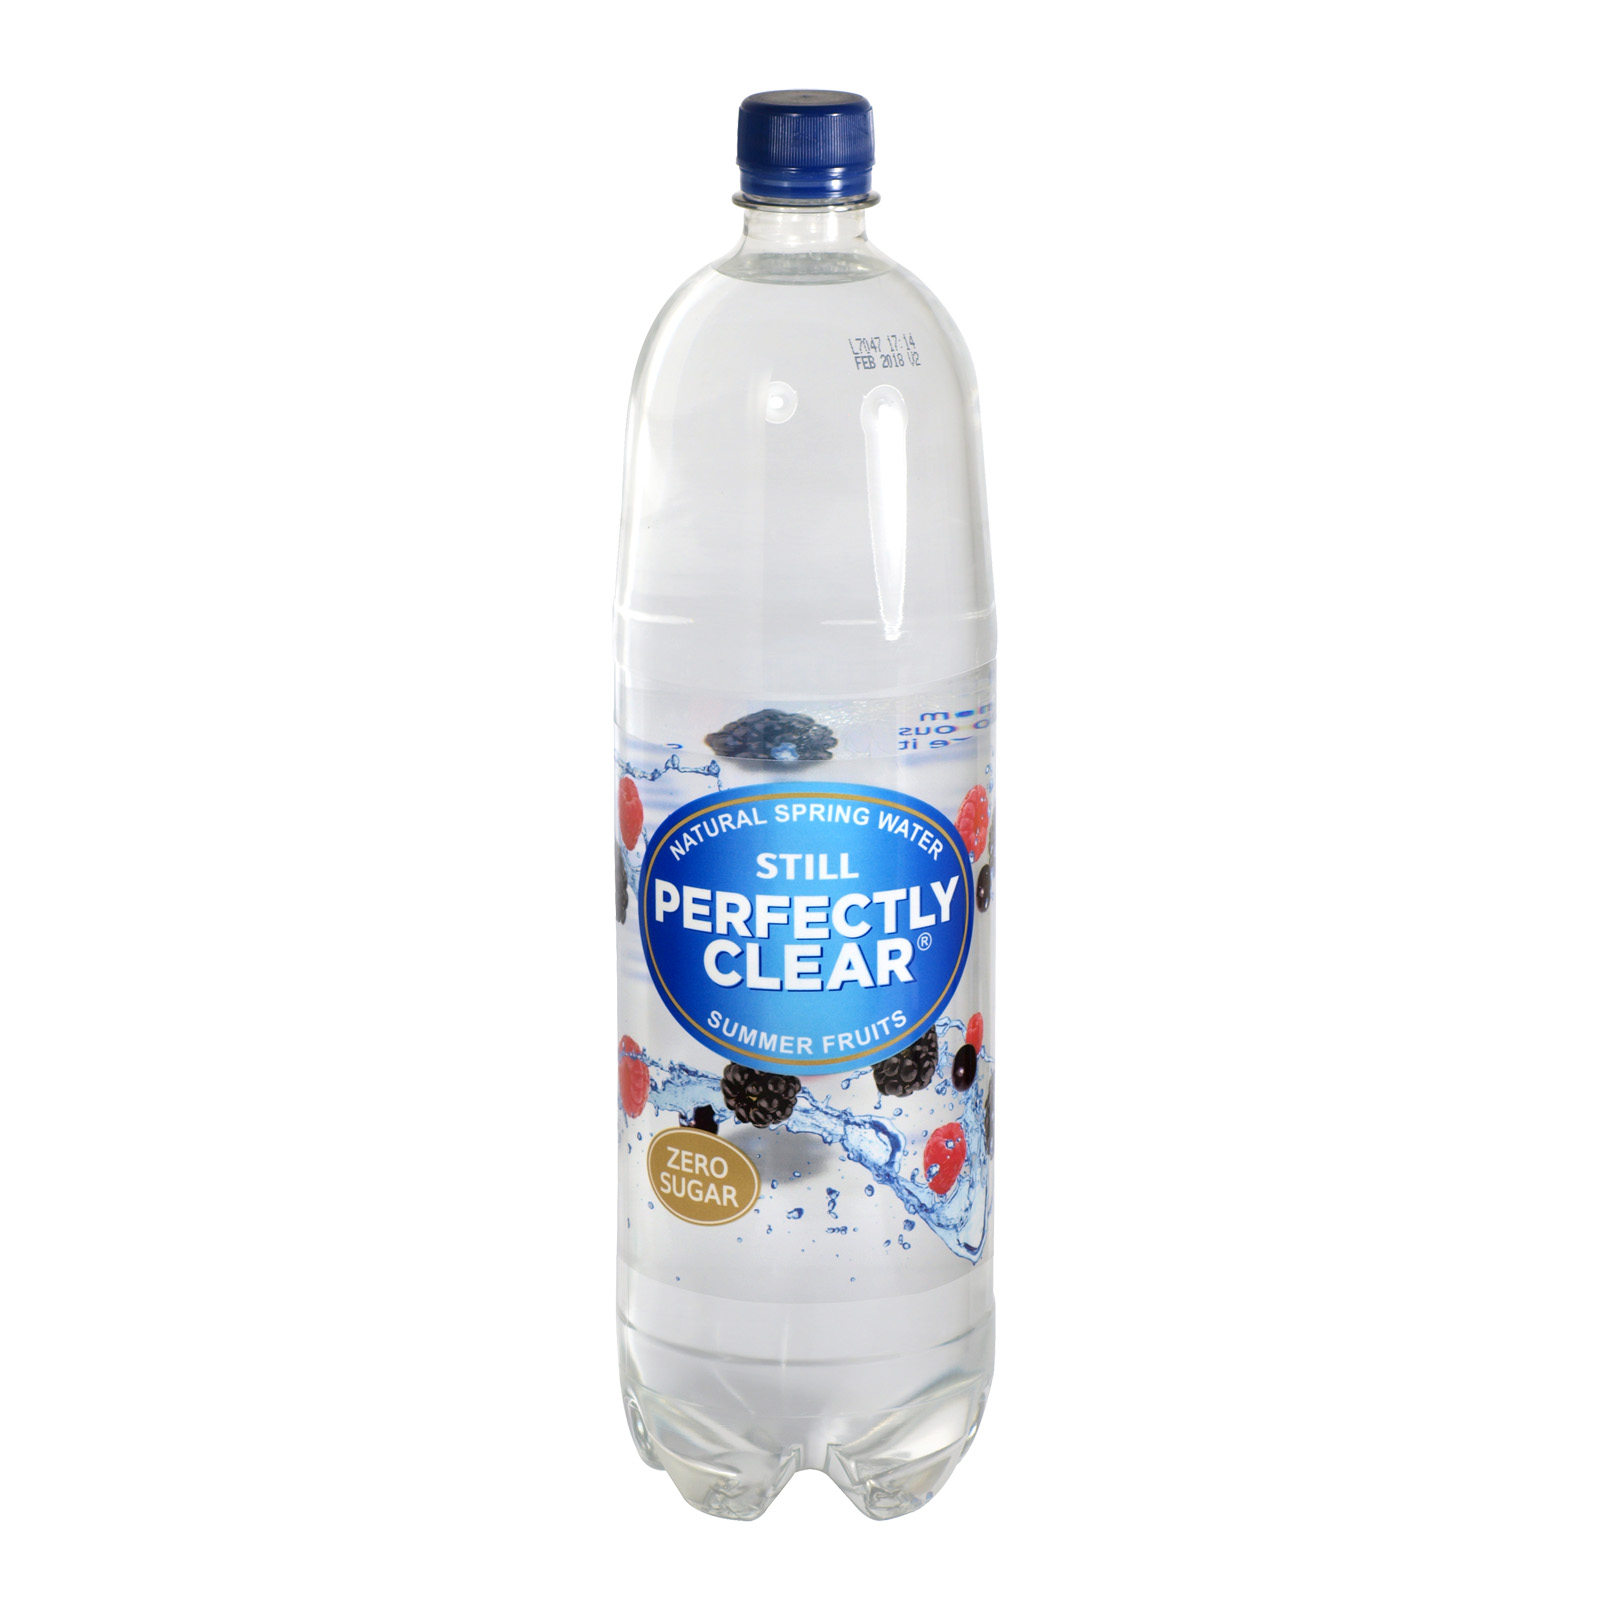 PERFECTLY CLEAR STILL 1.5L SUMMER FRUITS X8